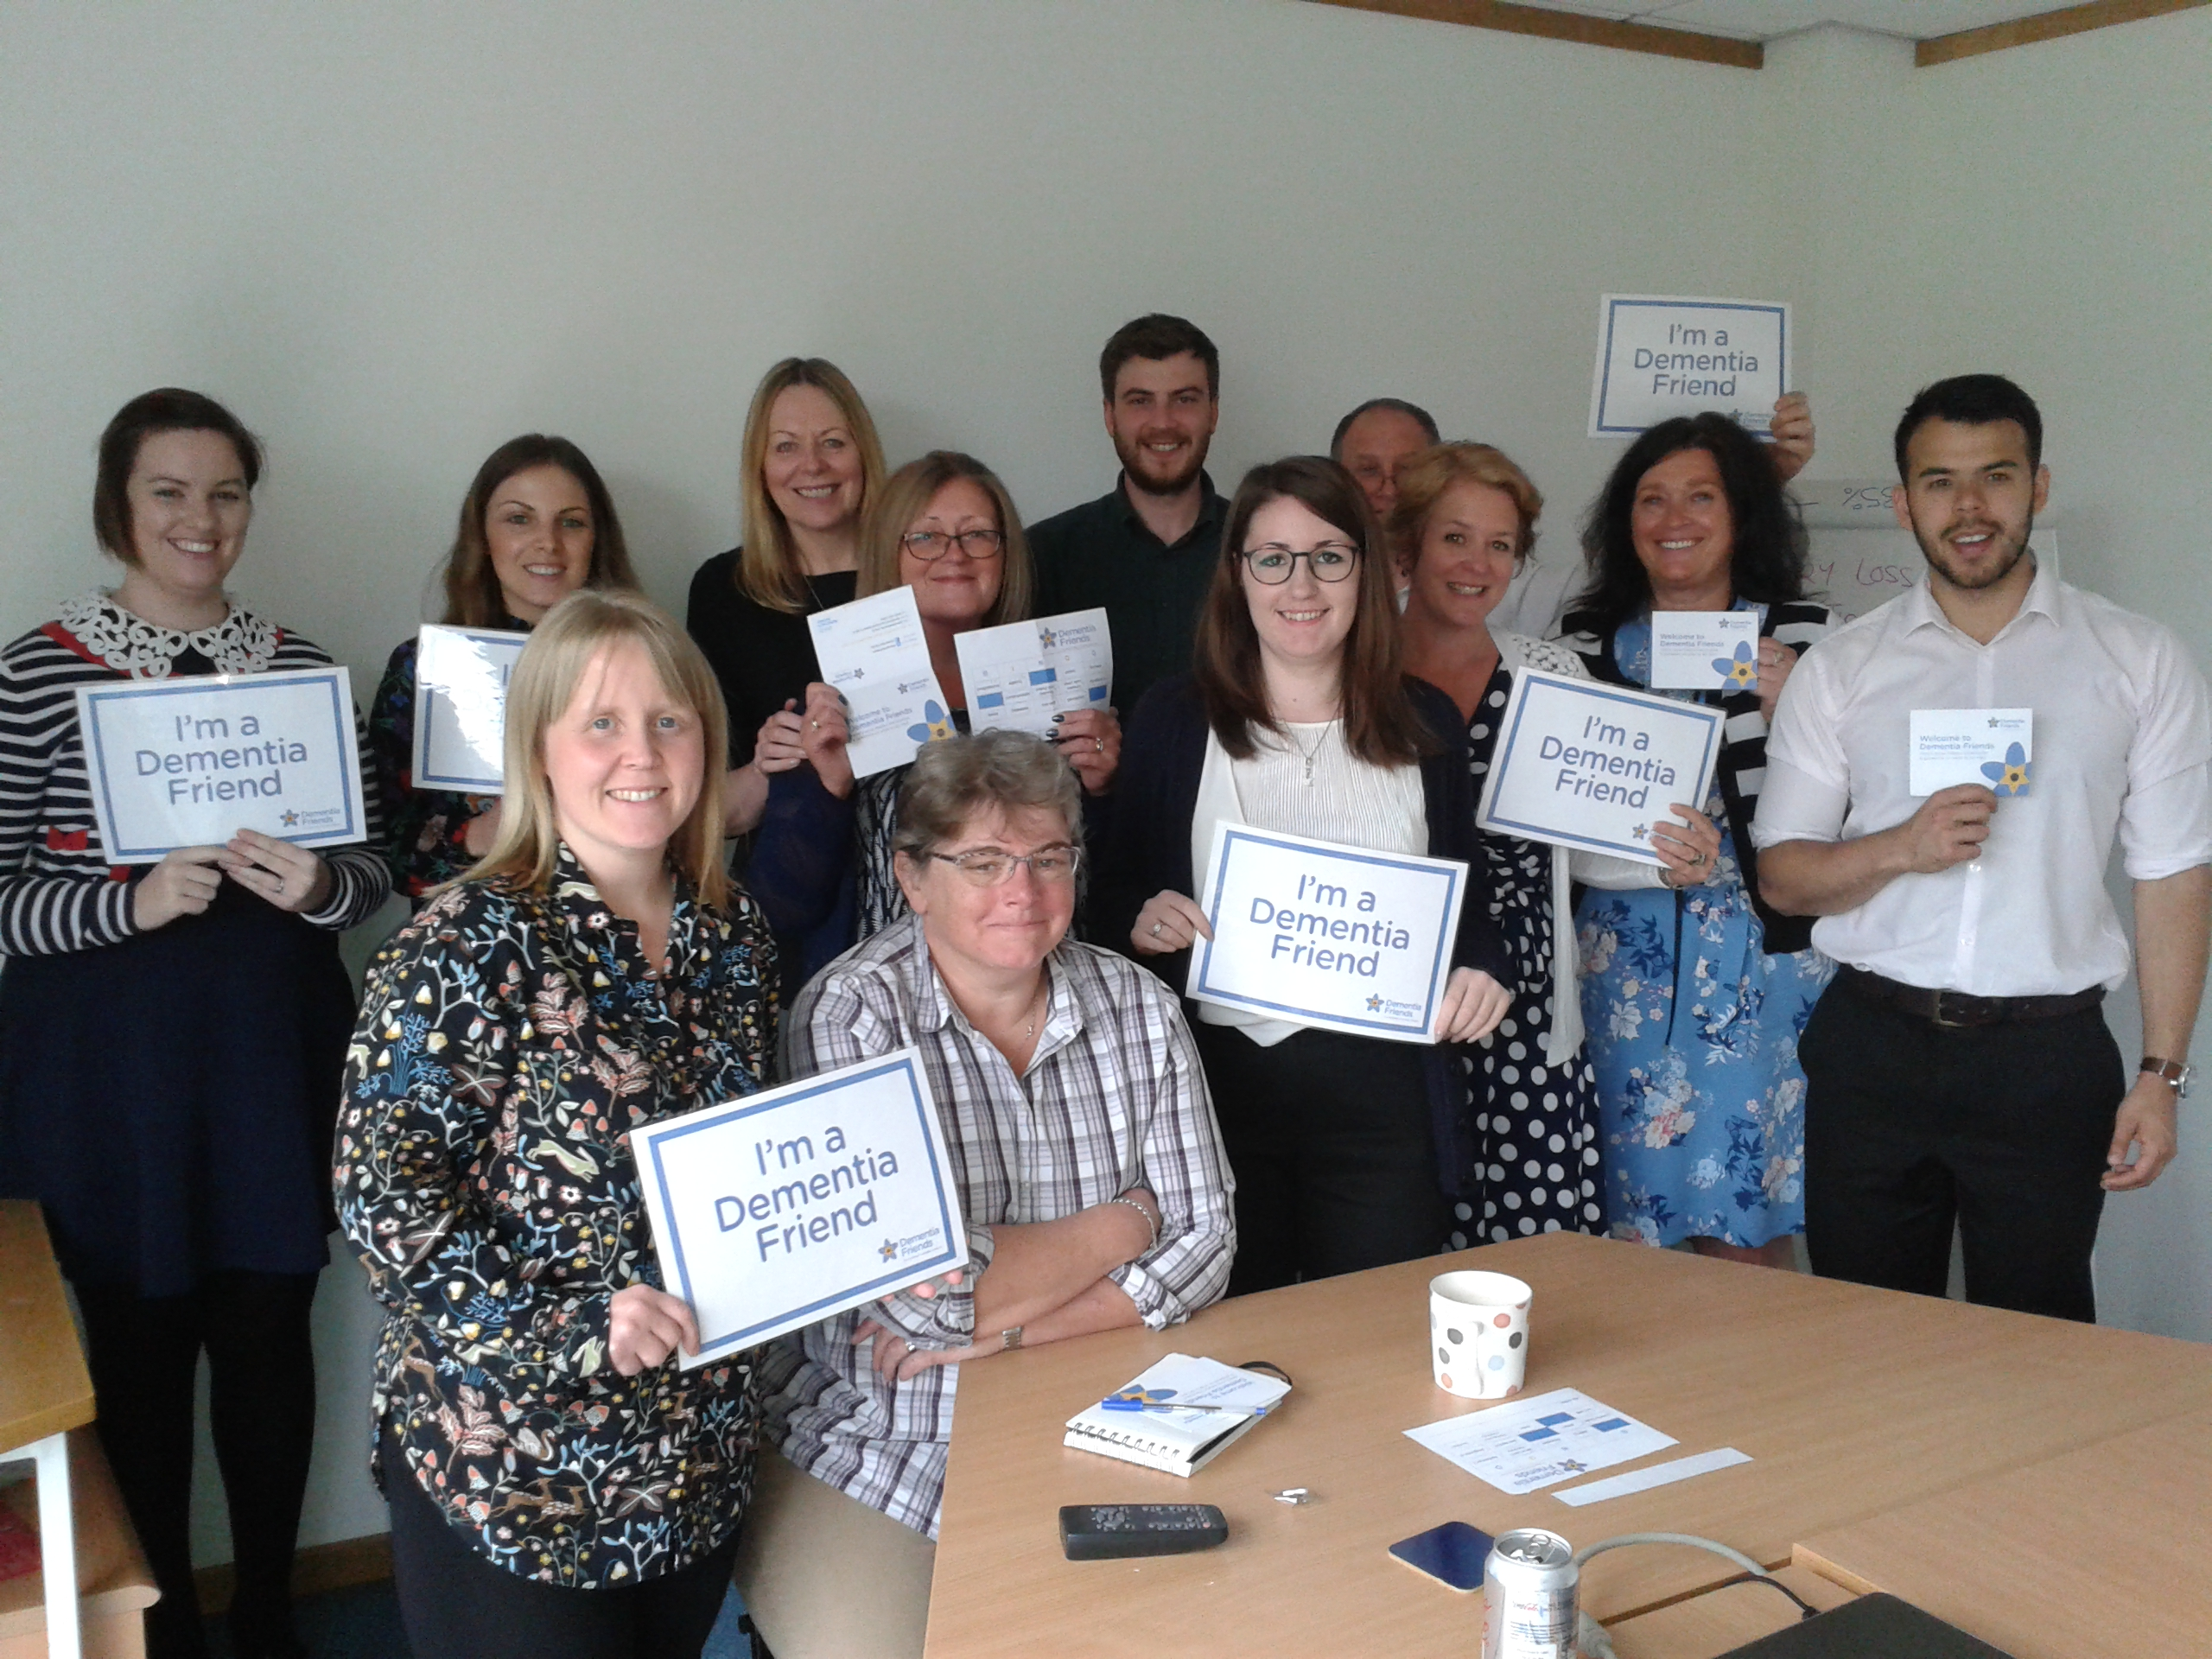 Make a difference and become a Dementia Friend